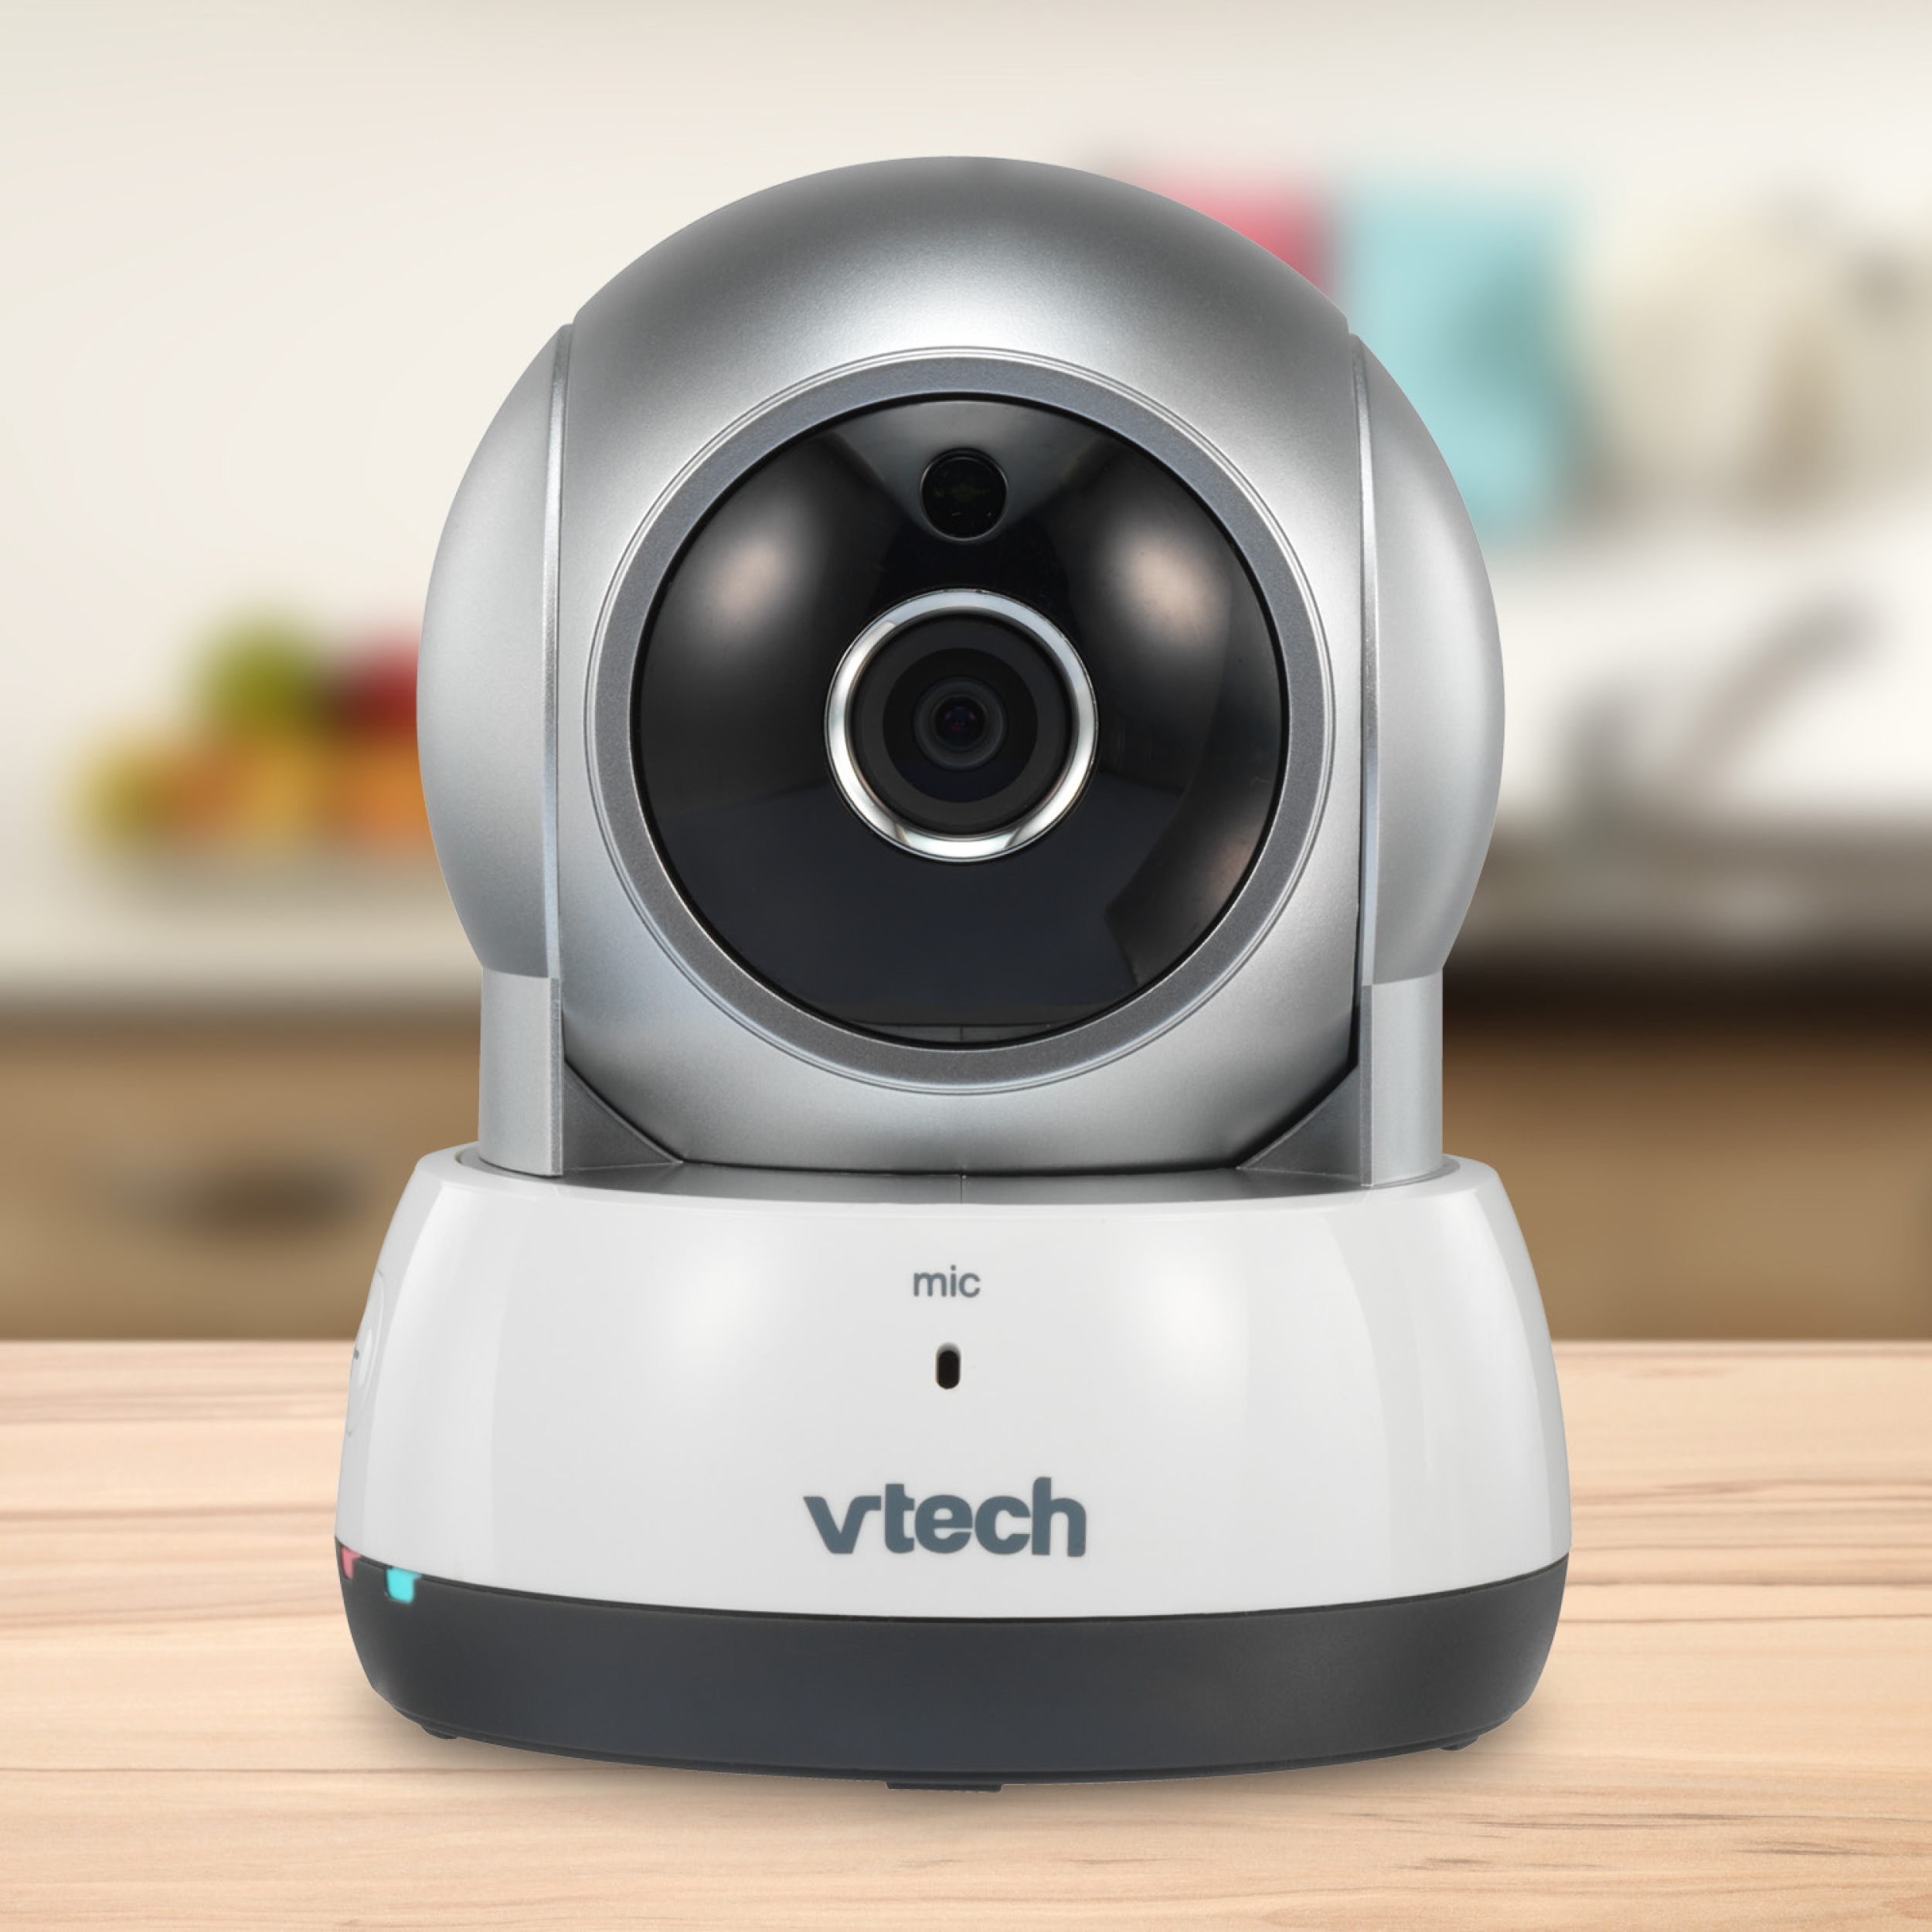 VTech VC931, Wireless IP HD Video Camera with Remote Pan & Tilt, Free Live Streaming, Infrared Night Vision, Silver by VTech